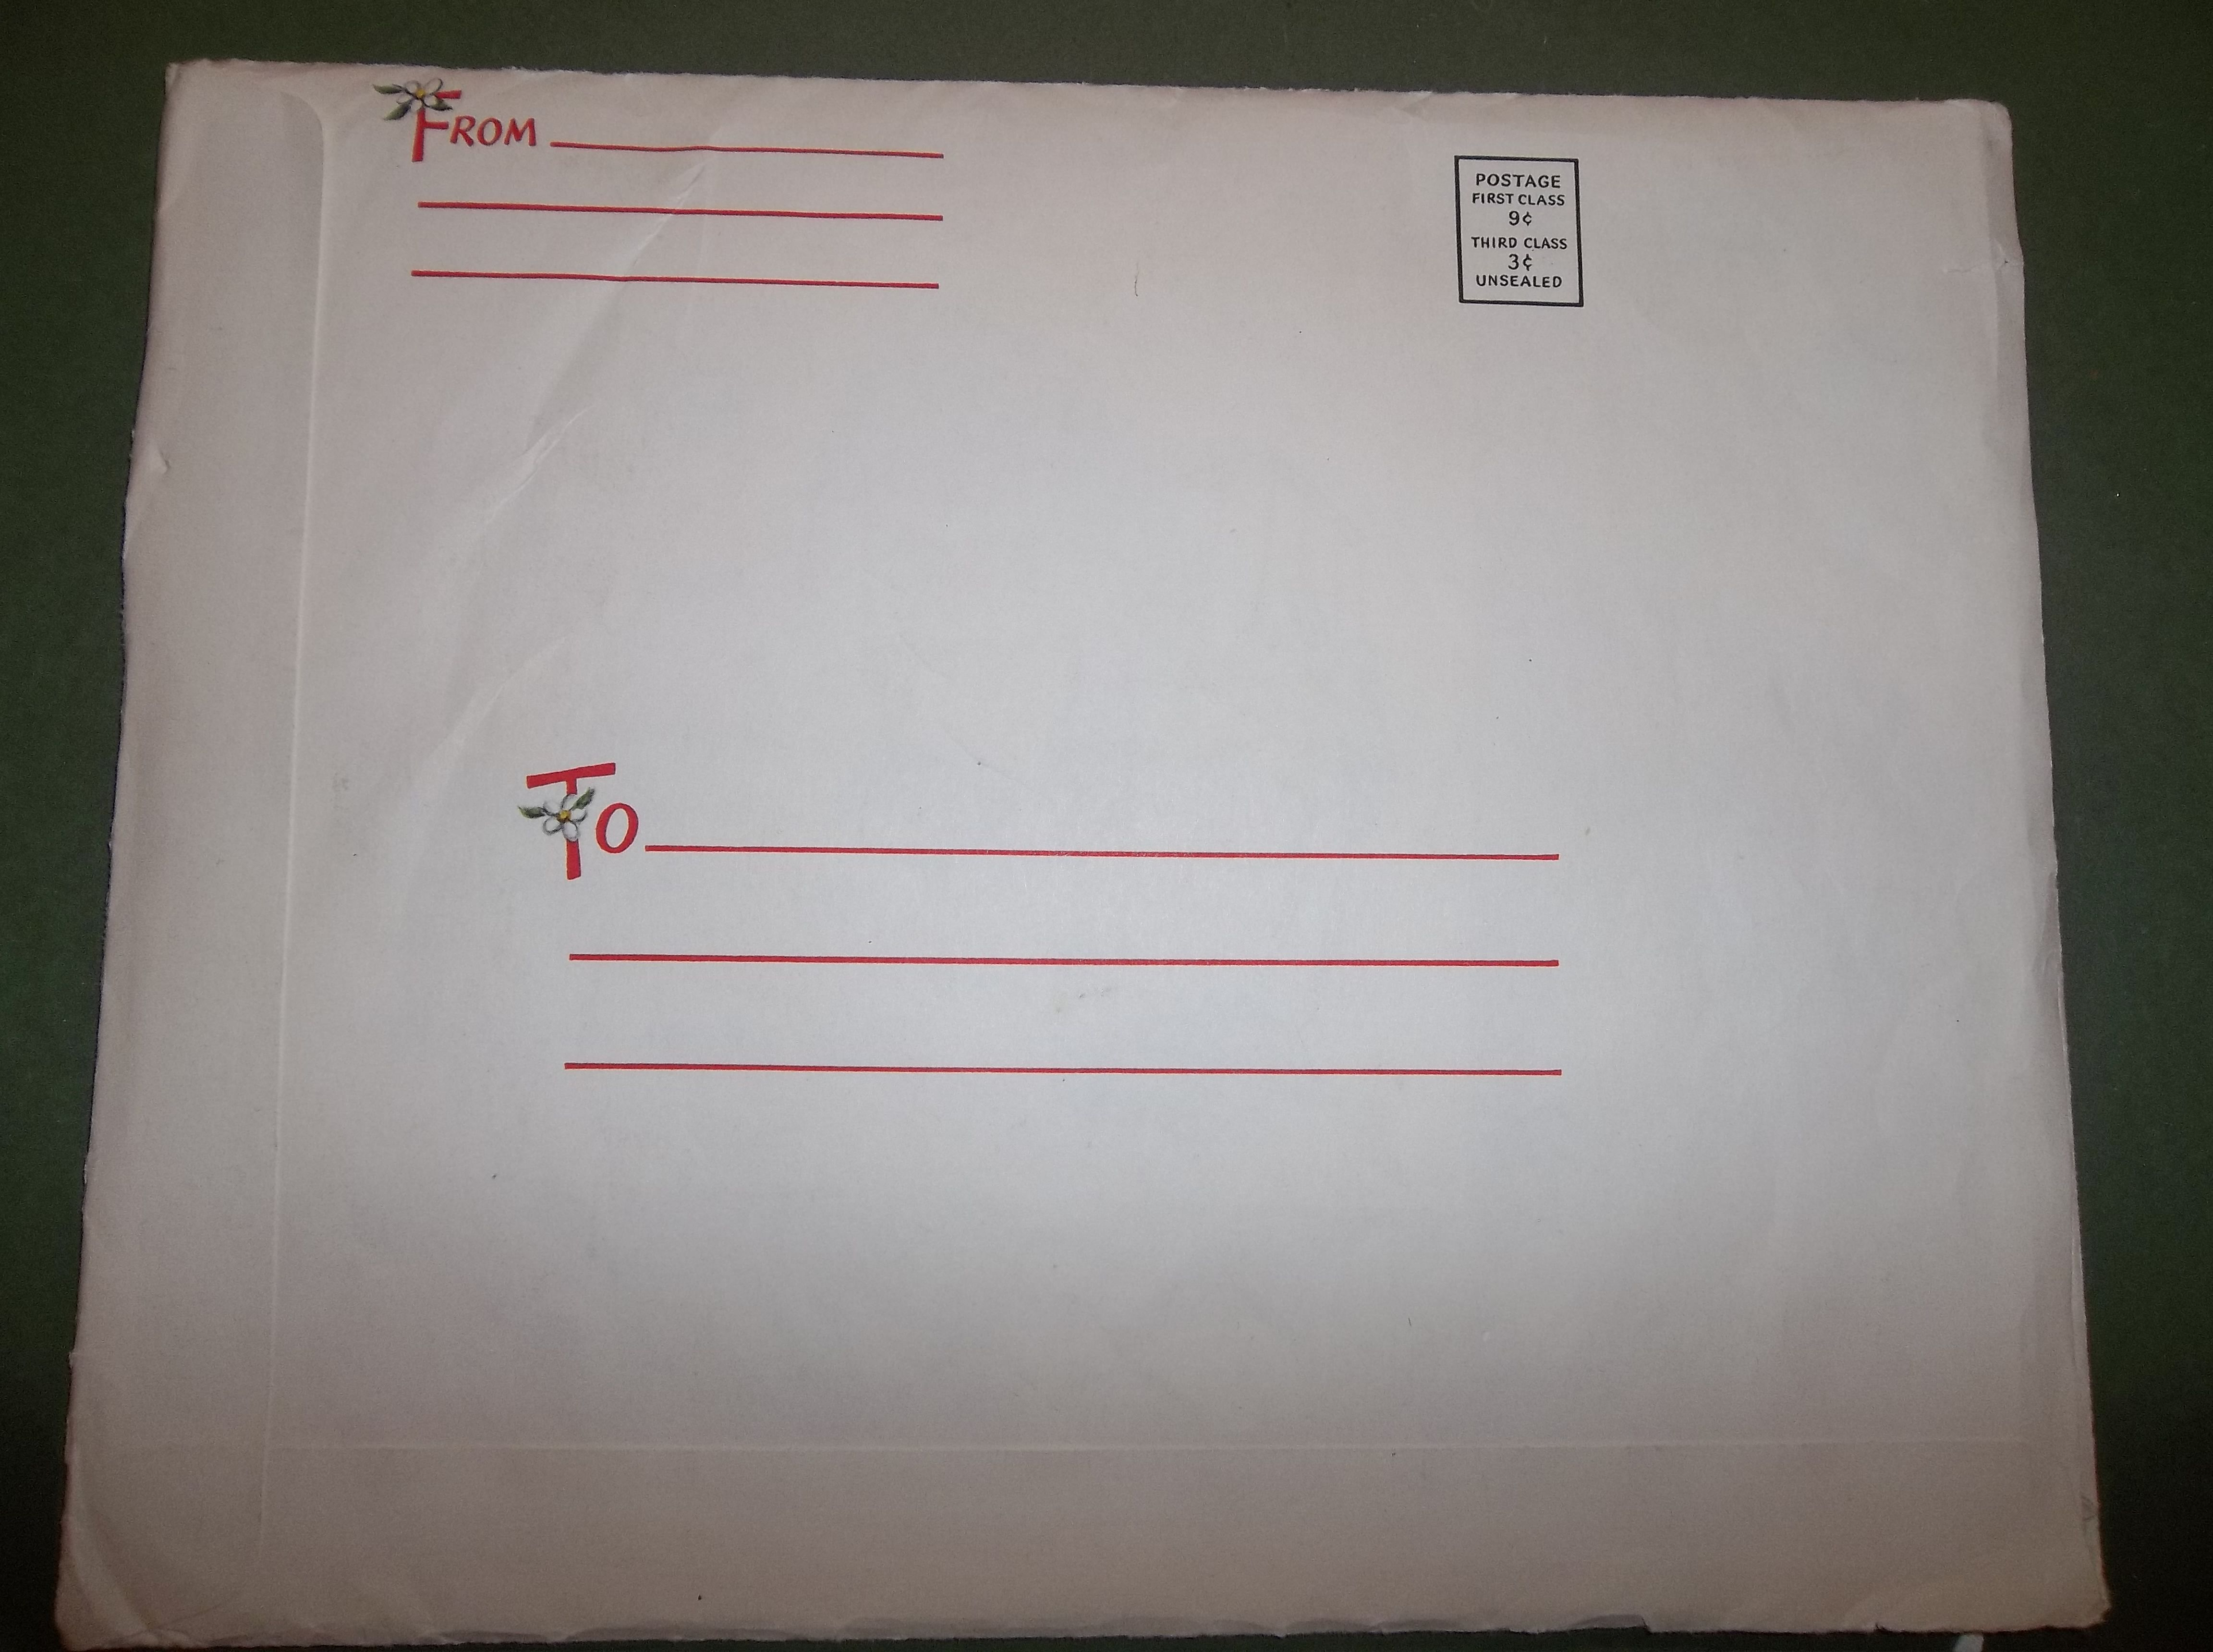 Most of the Hallmark May Basket sets came in envelopes that could be sent to someone so that they could make and give away the baskets.  For some reason it was cheaper to mail them in an unsealed envelope (3 cents) rather than a sealed one (9 cents).  Here's a picture of the address side of the envelope.